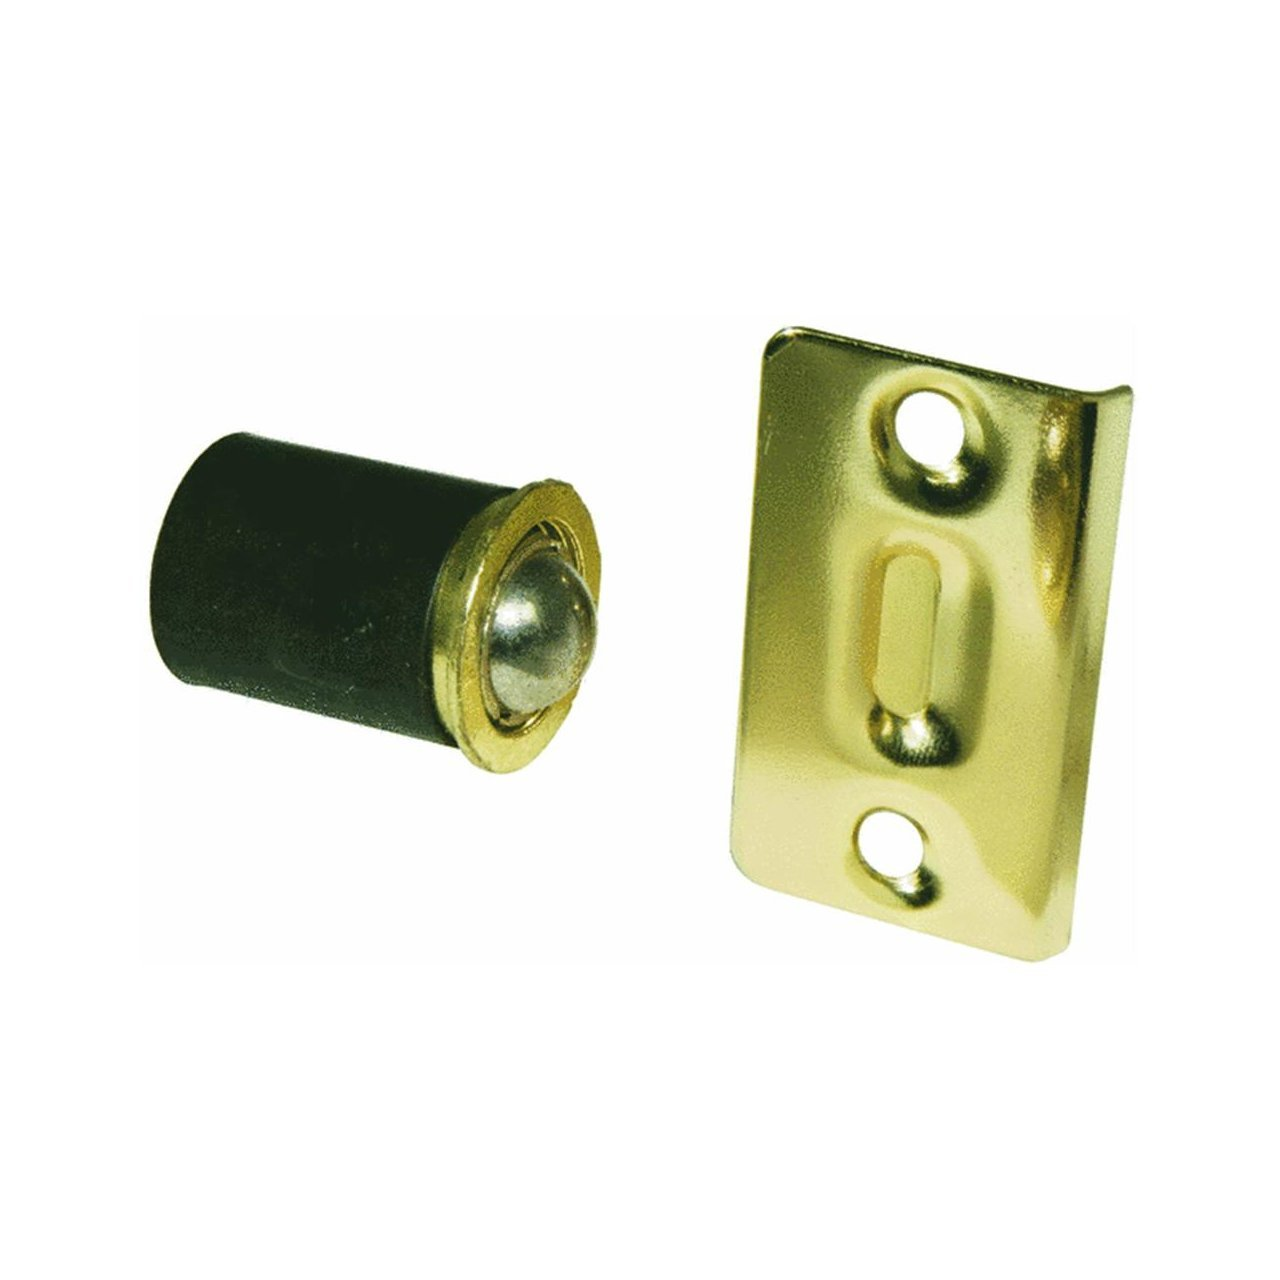 Elegant Ultra Hardware Prod. 61760 Closet Door Ball Catch   Polished Brass   Entry  Door Lever Lock Sets   Amazon.com